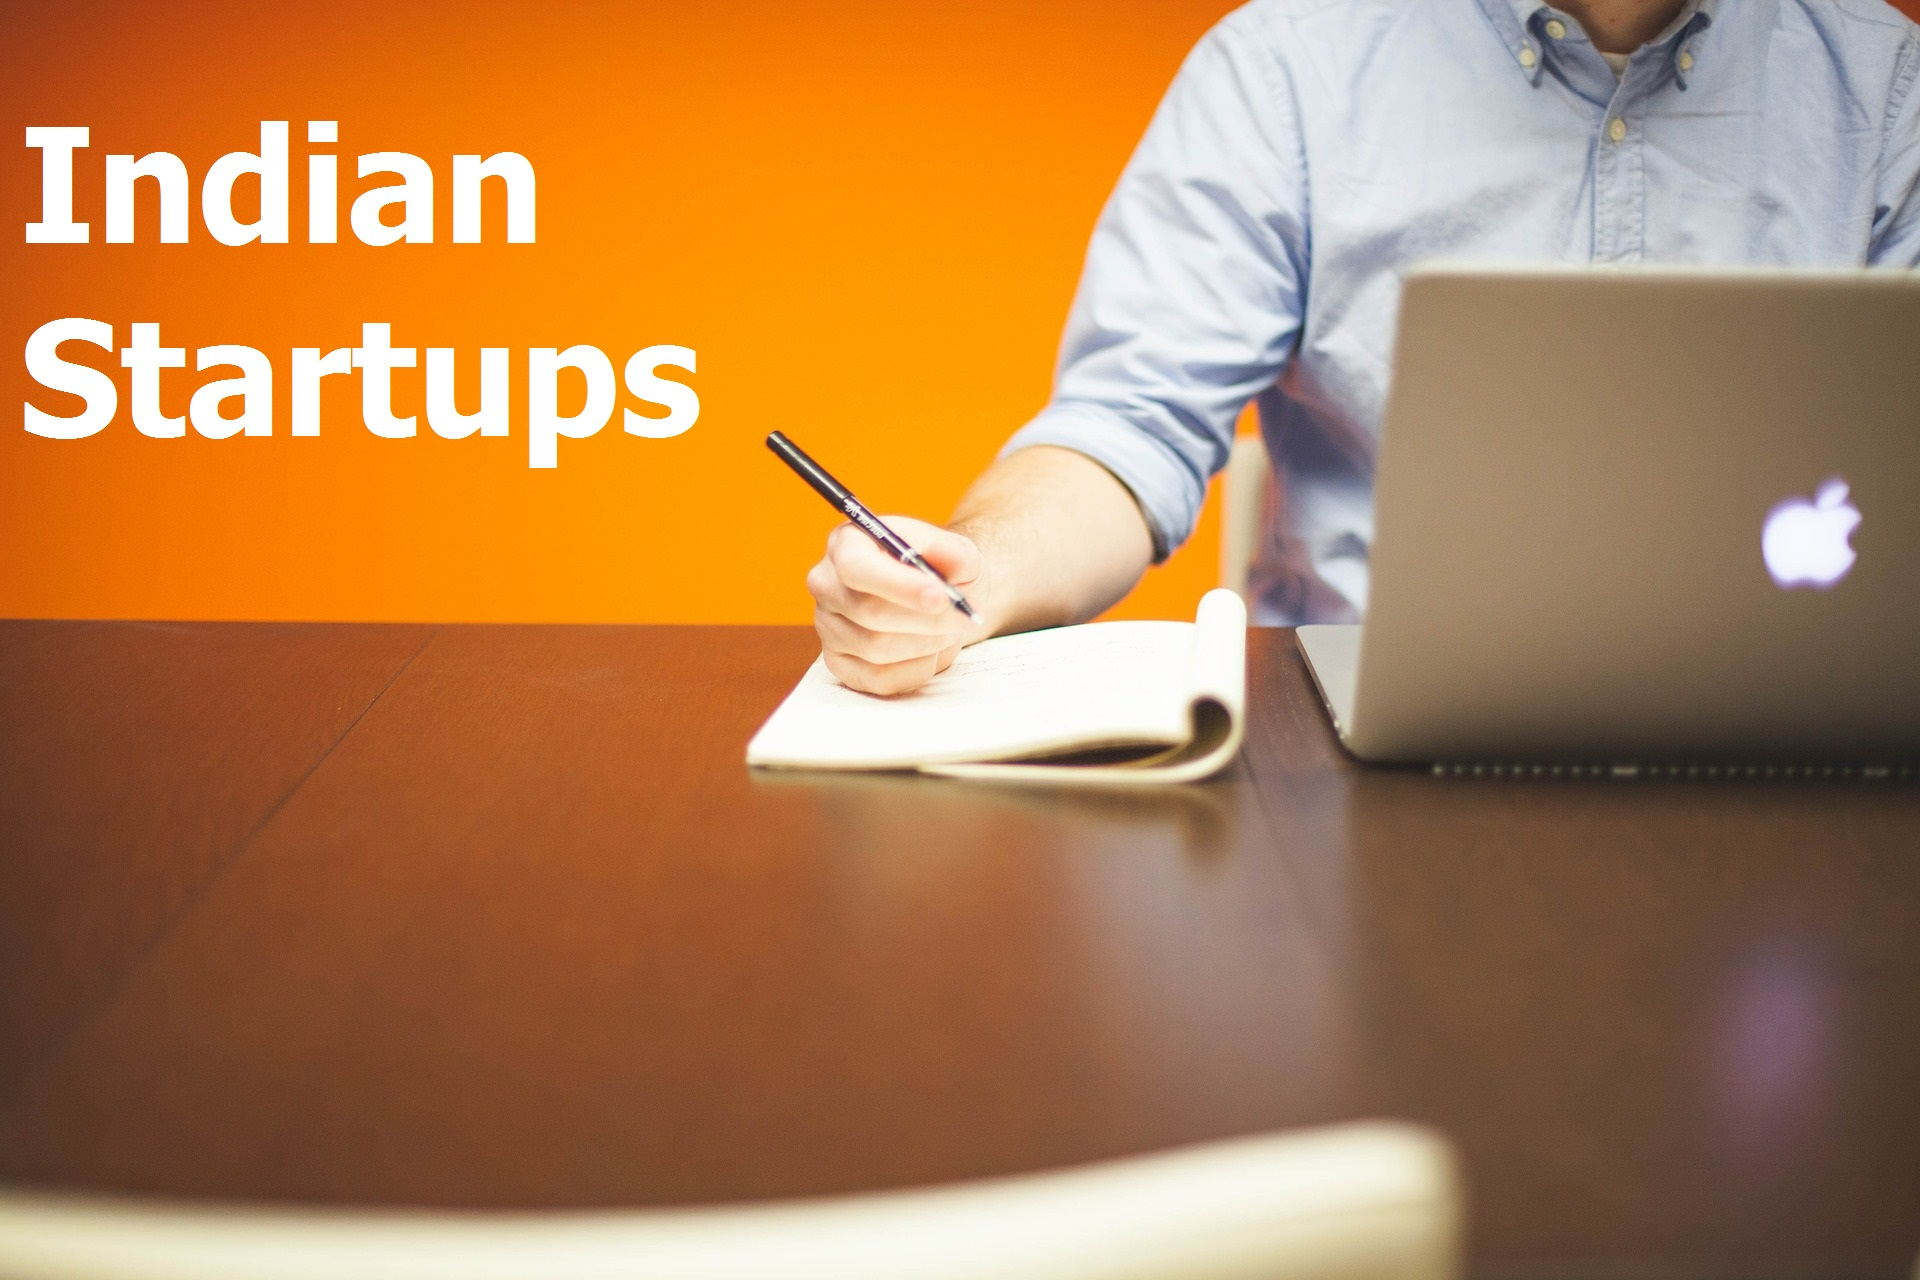 What are Indian Startups – government provides definition